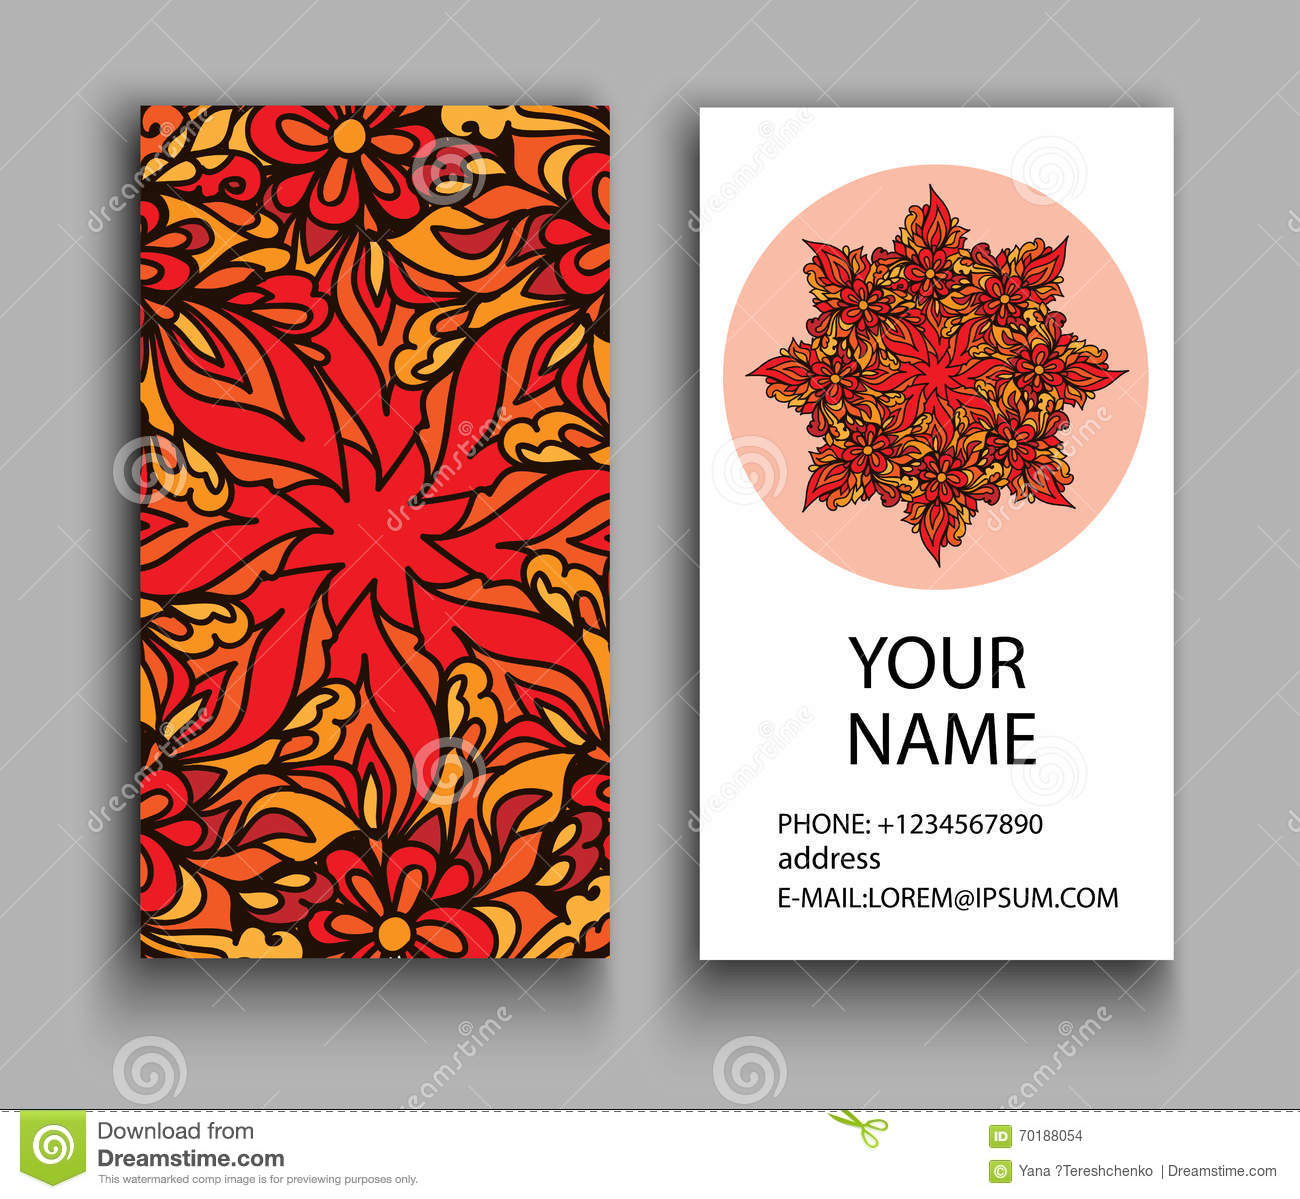 Business card vintage decorative elements ornamental floral download business card vintage decorative elements ornamental floral business cards oriental pattern stock reheart Gallery